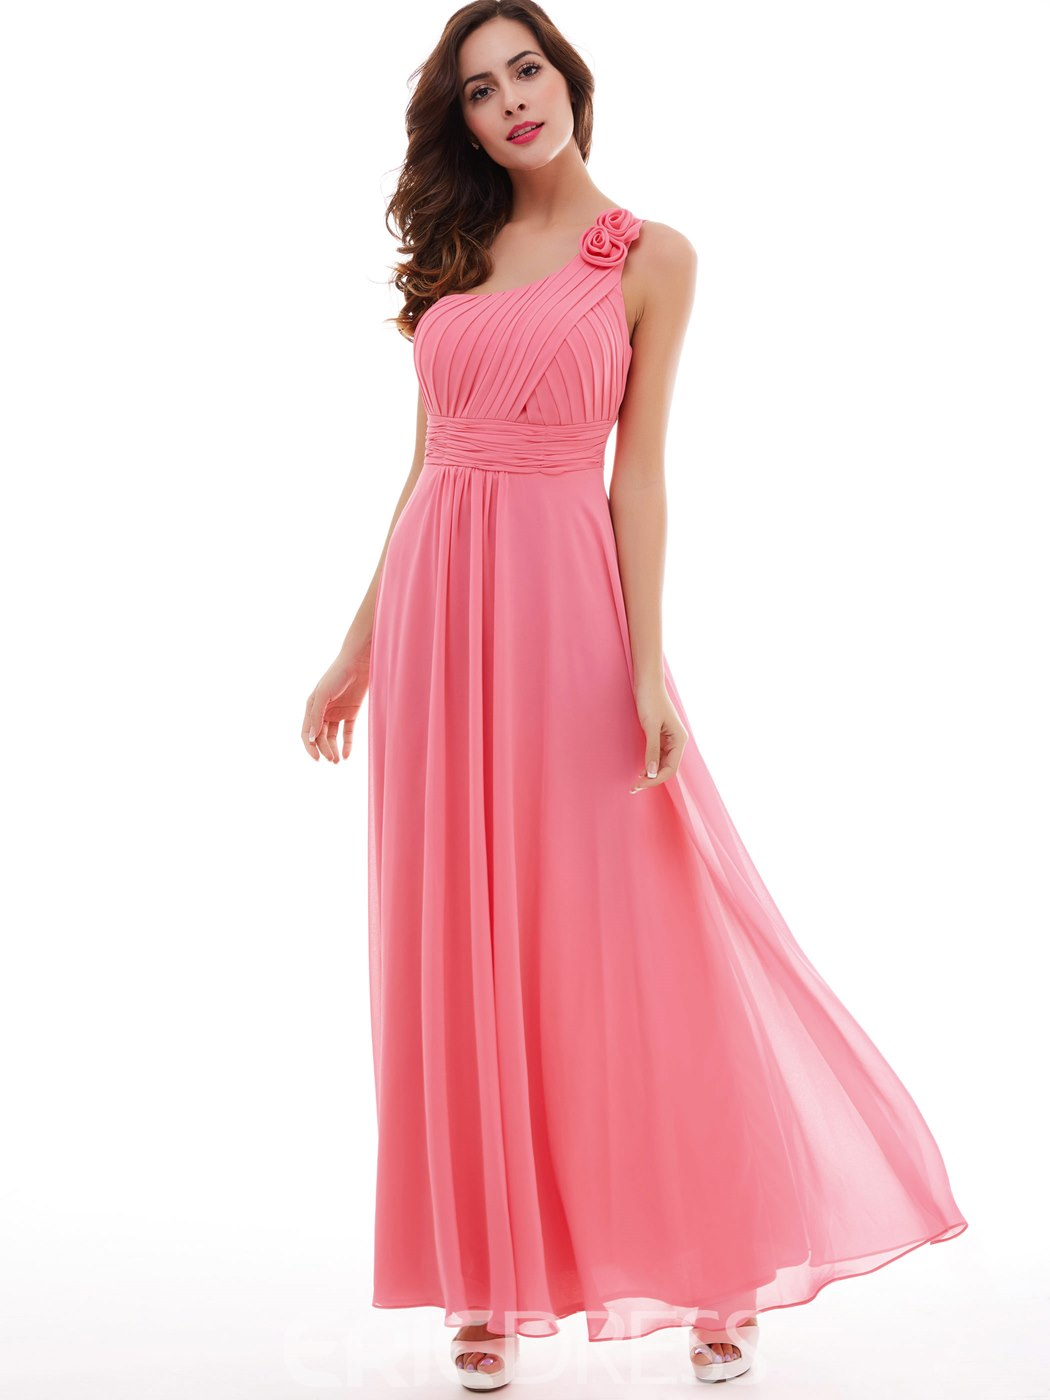 Ericdress One-Shoulder Flower plissiert Chiffon a-Linie Kleid